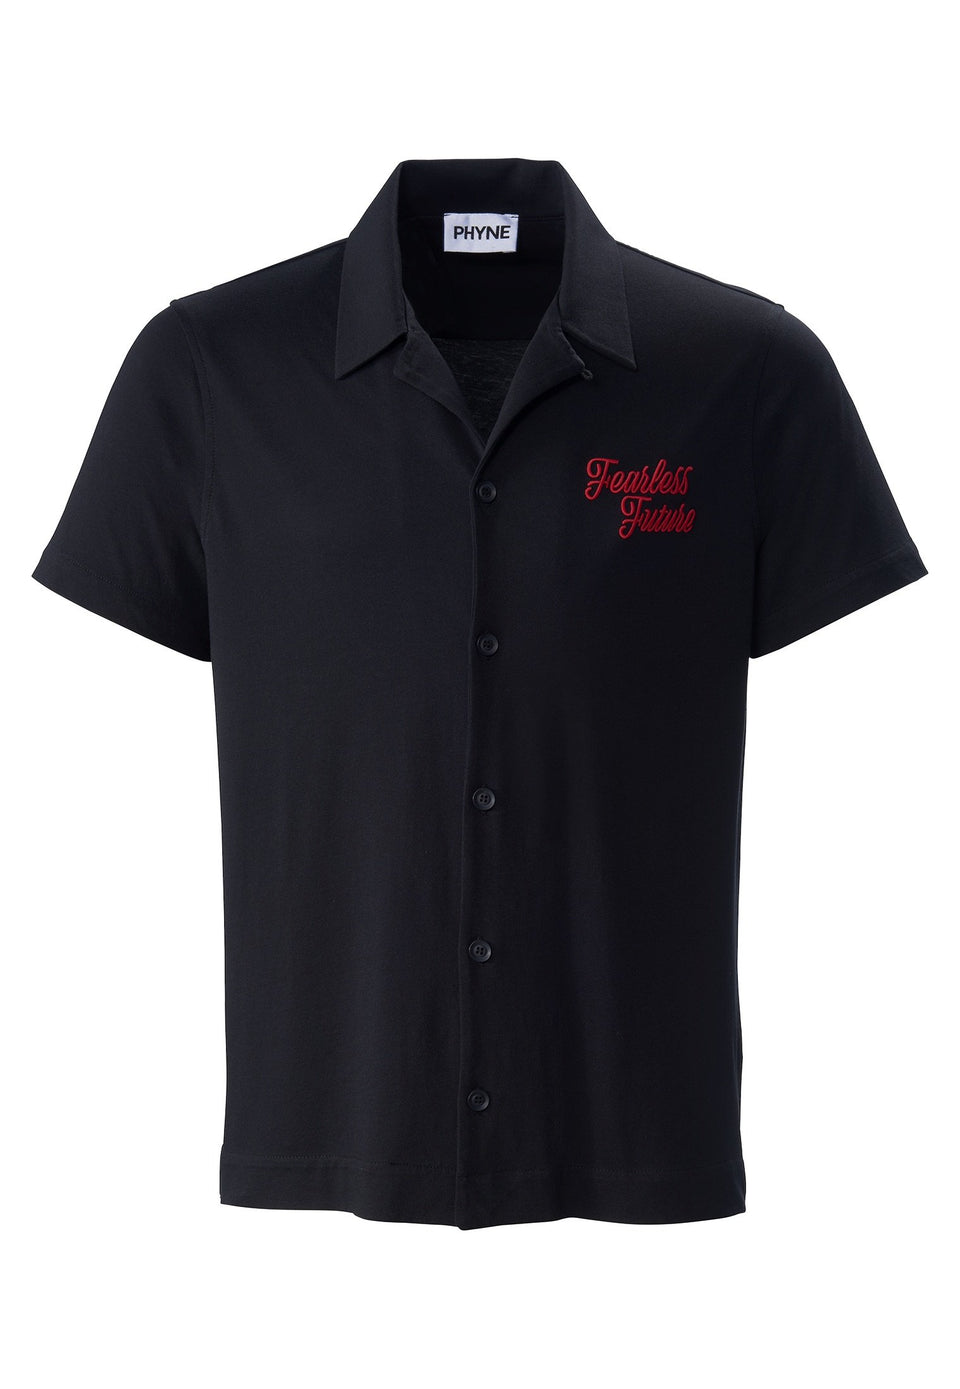 Bowling Shirt Fearless Future Black